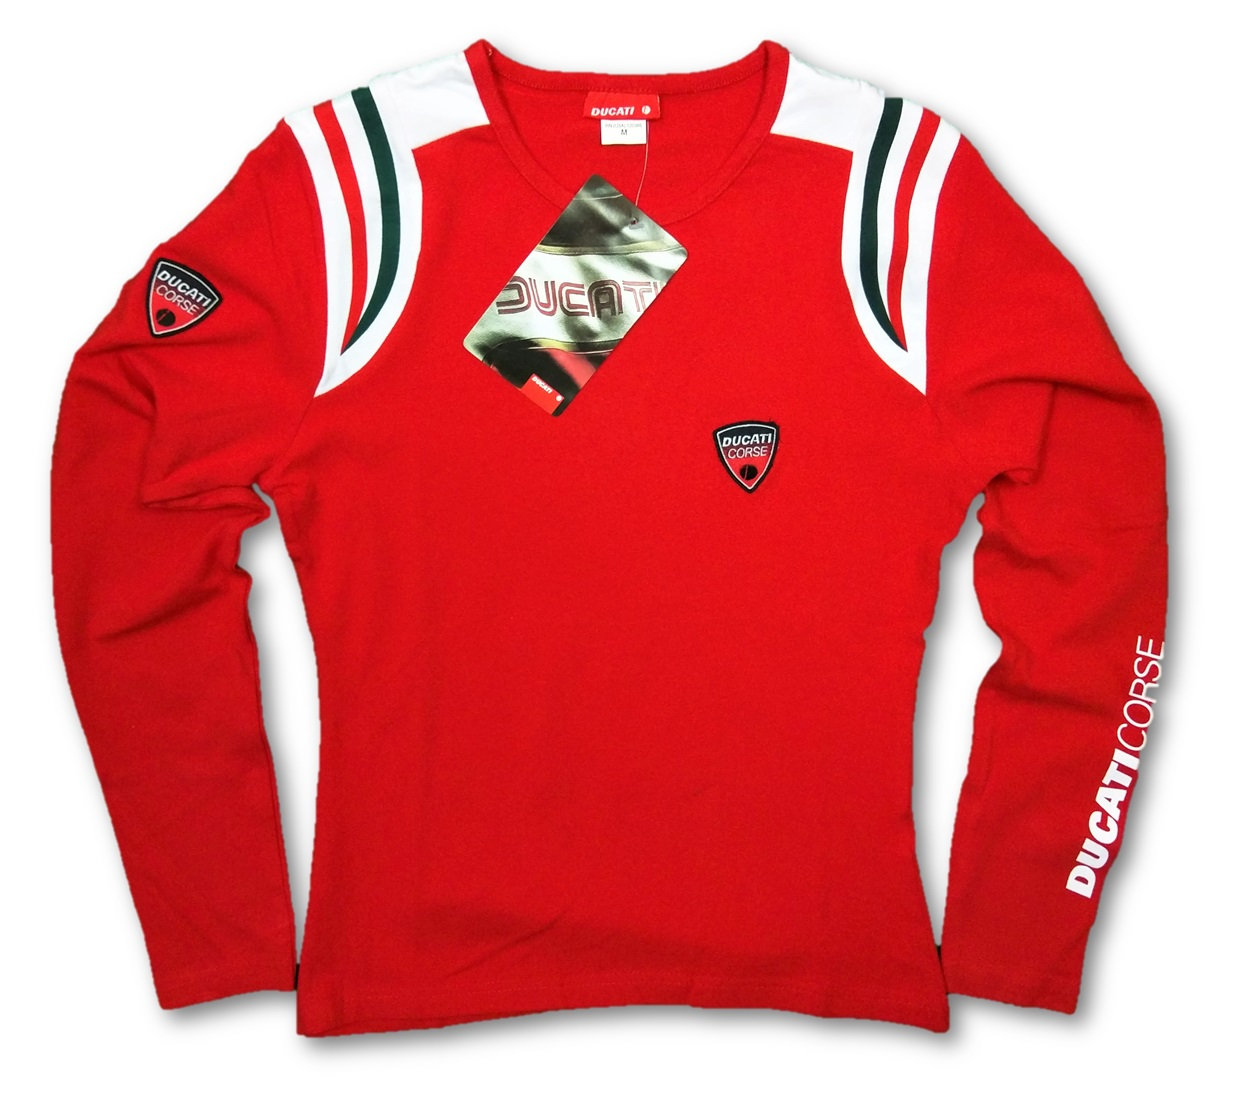 t shirt longsleeve ducati corse ladies motogp bike motorcycle new red medium ebay. Black Bedroom Furniture Sets. Home Design Ideas